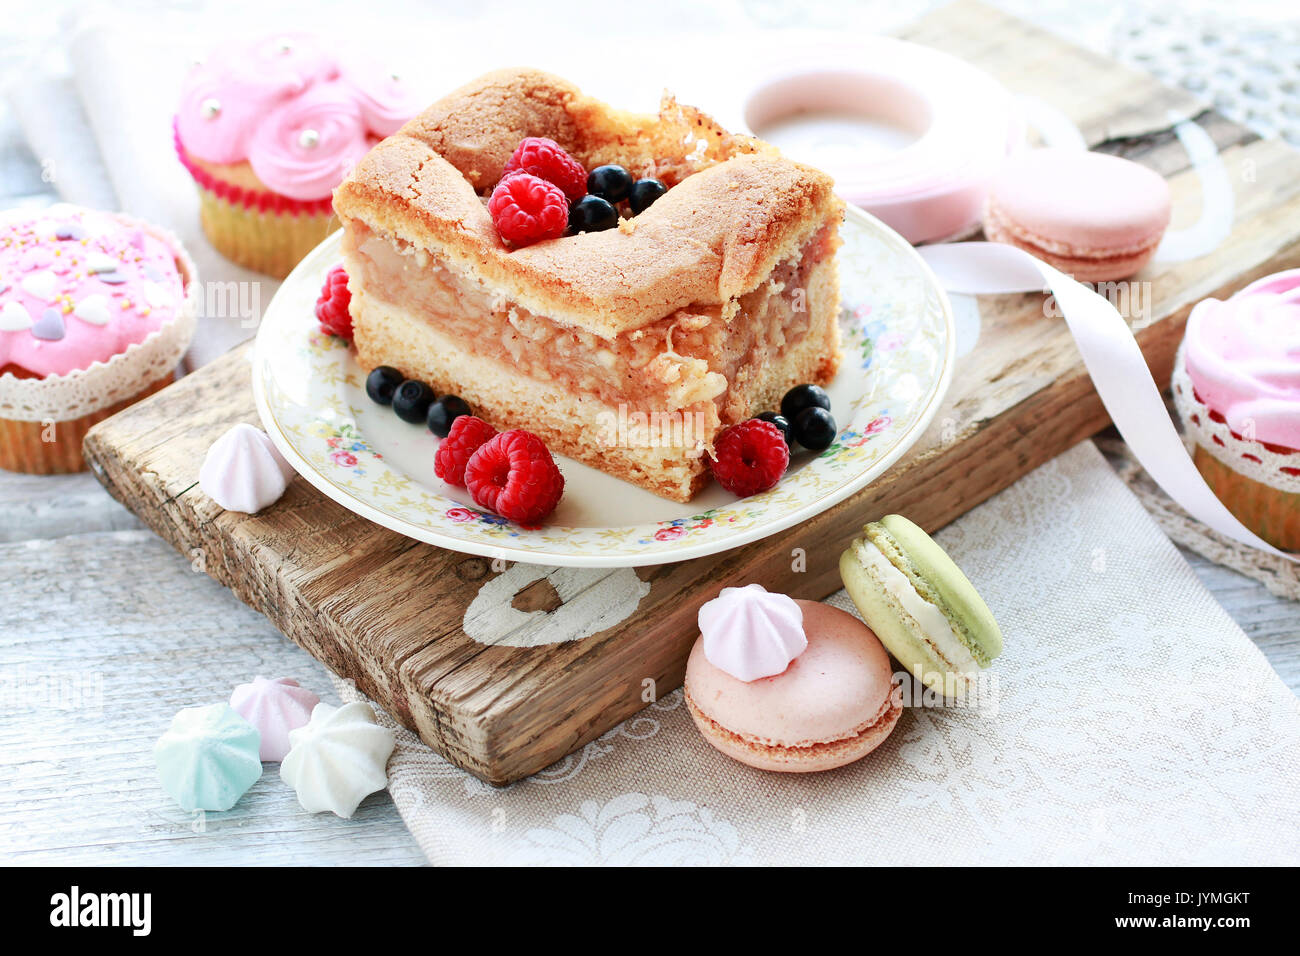 Apple pie decorated with raspberries and blueberries, french macaroons around. Birthday party table. - Stock Image